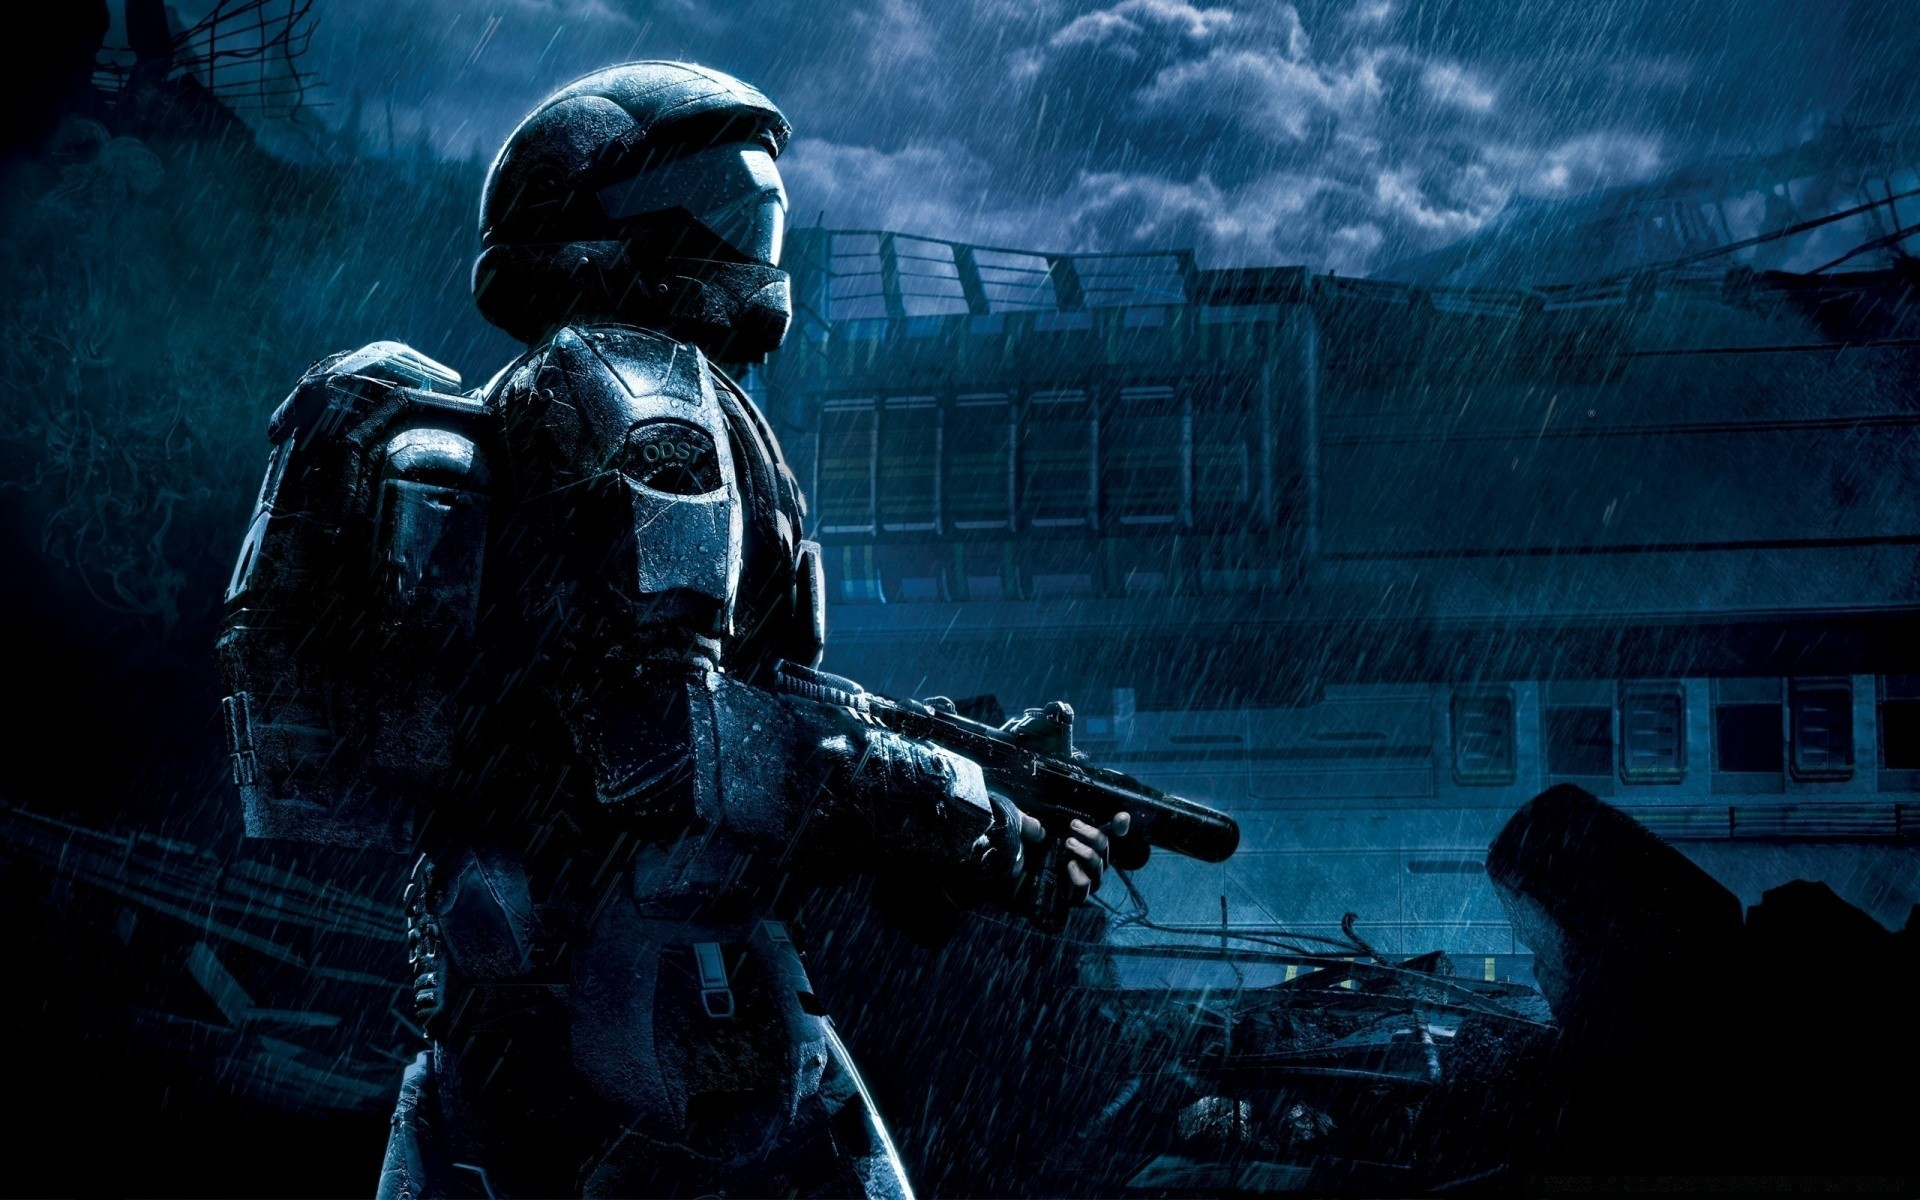 Halo 3 Odst Master Chief Phone Wallpapers